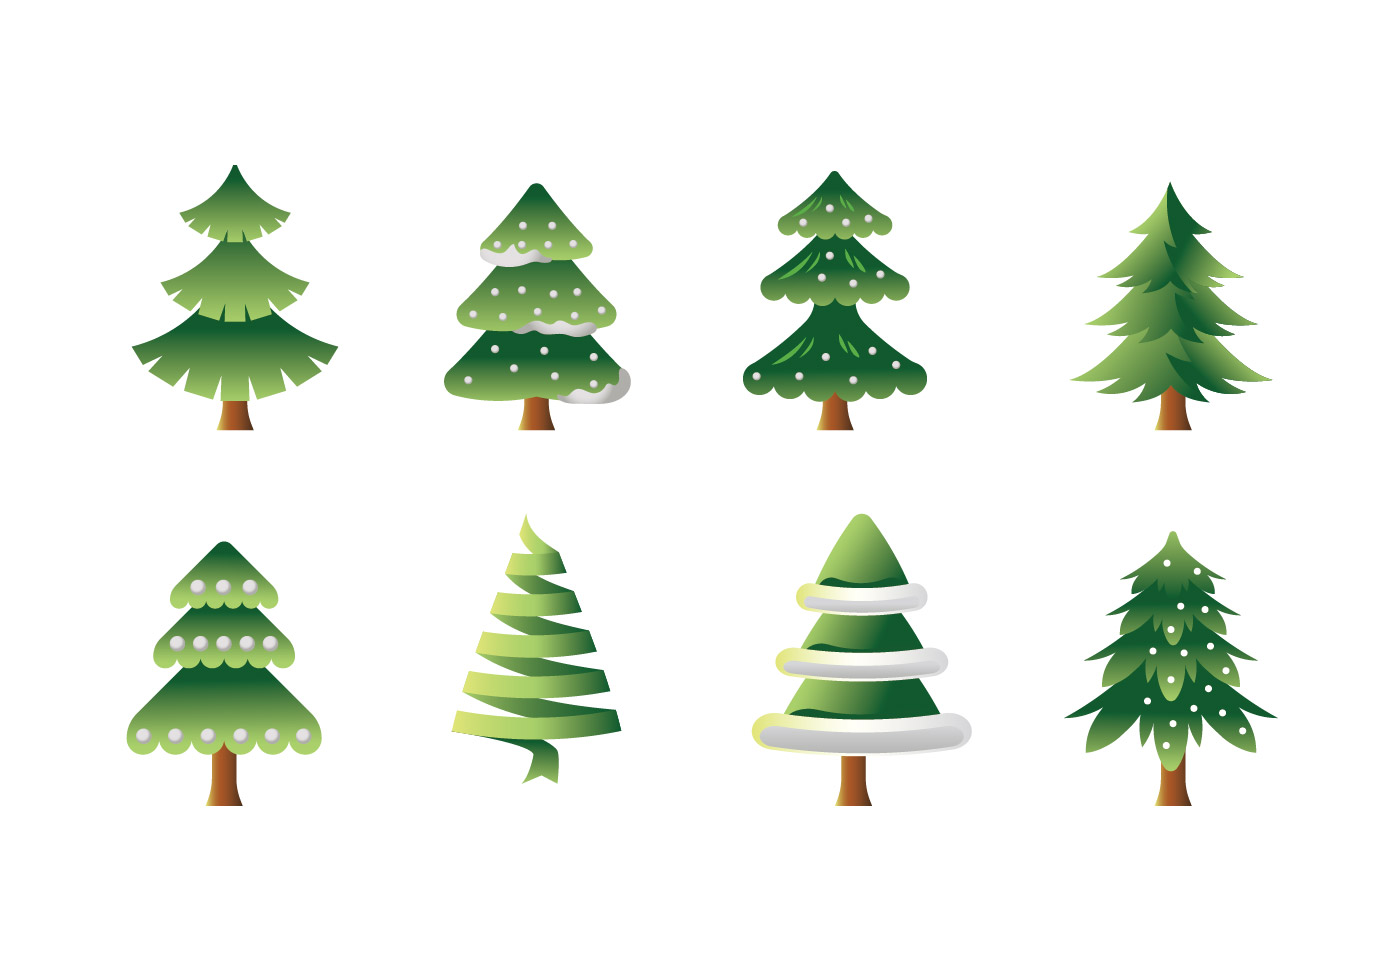 Vector collection of christmas trees or sapin download free vector art stock graphics images - Sapin clipart ...